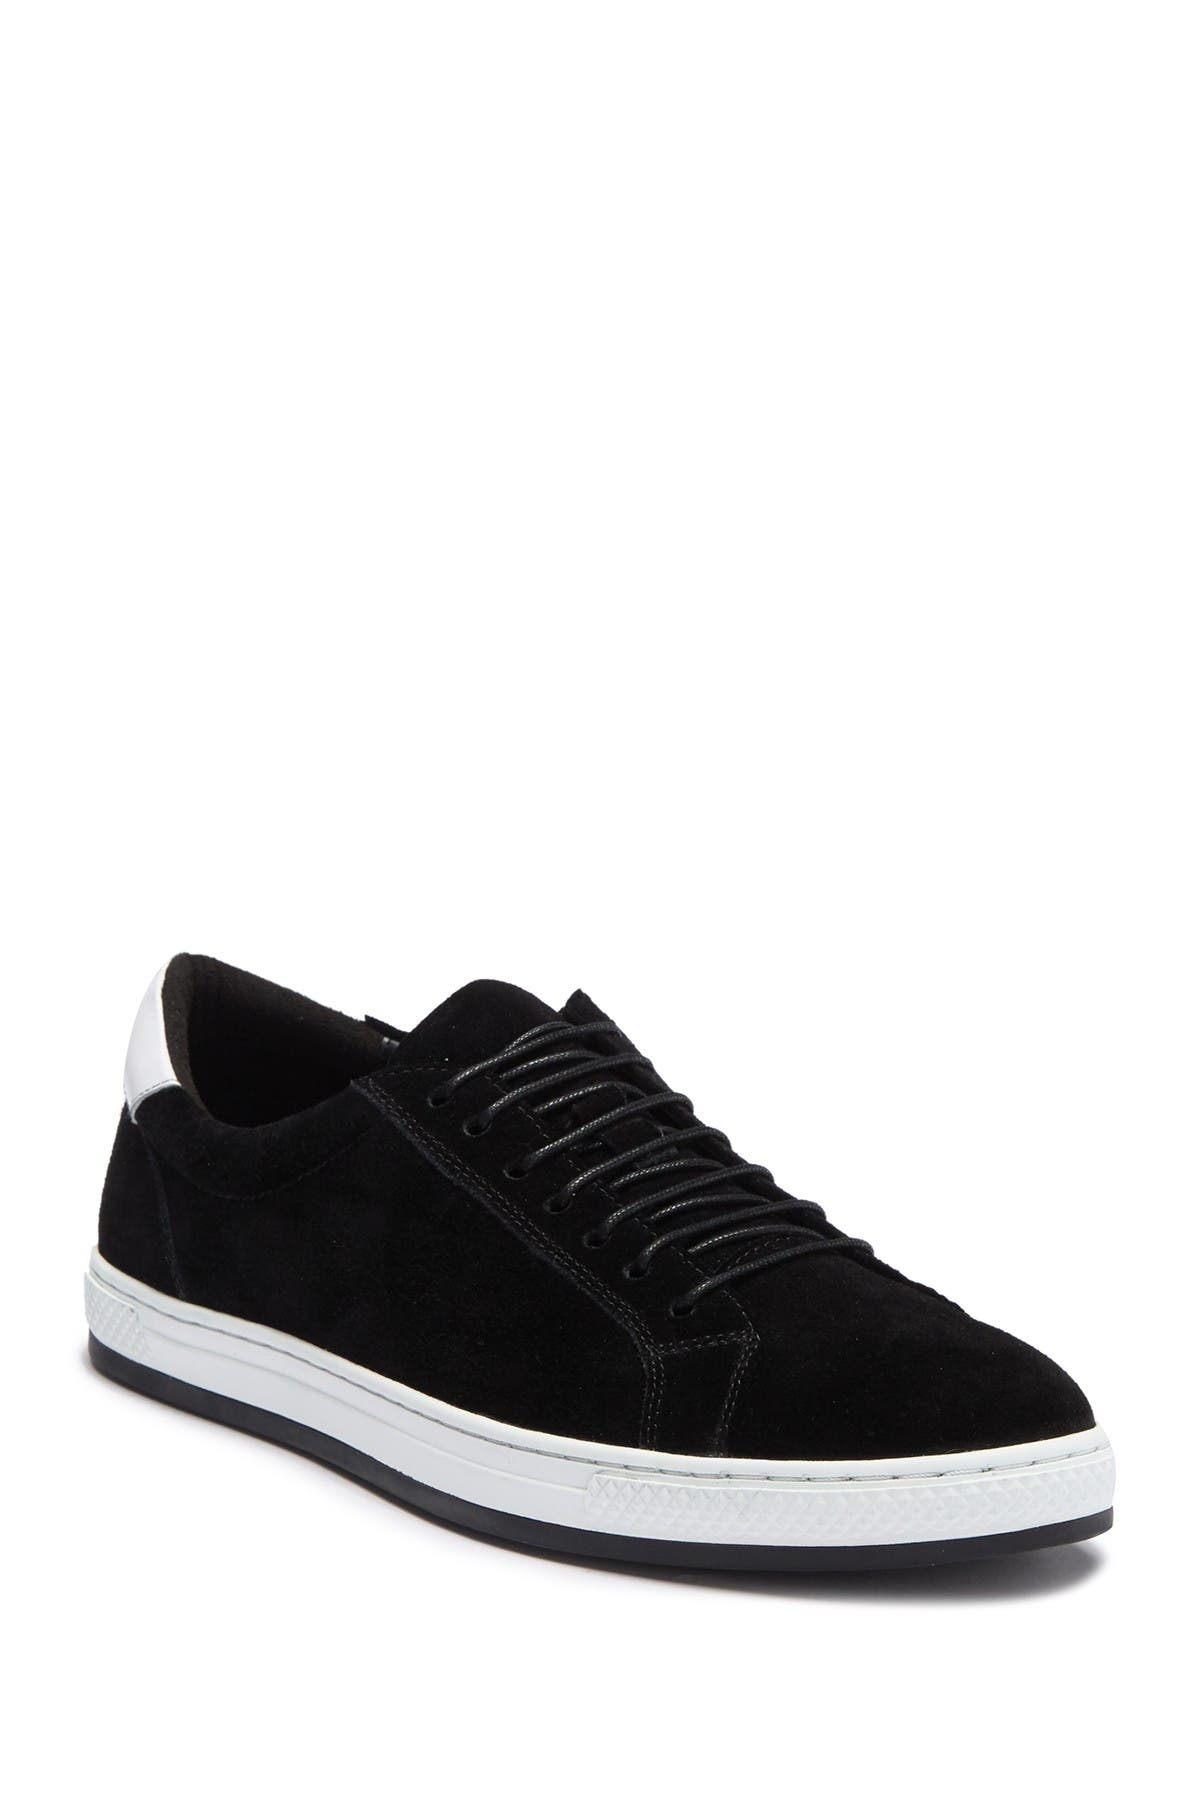 Image of English Laundry Queens Sneaker